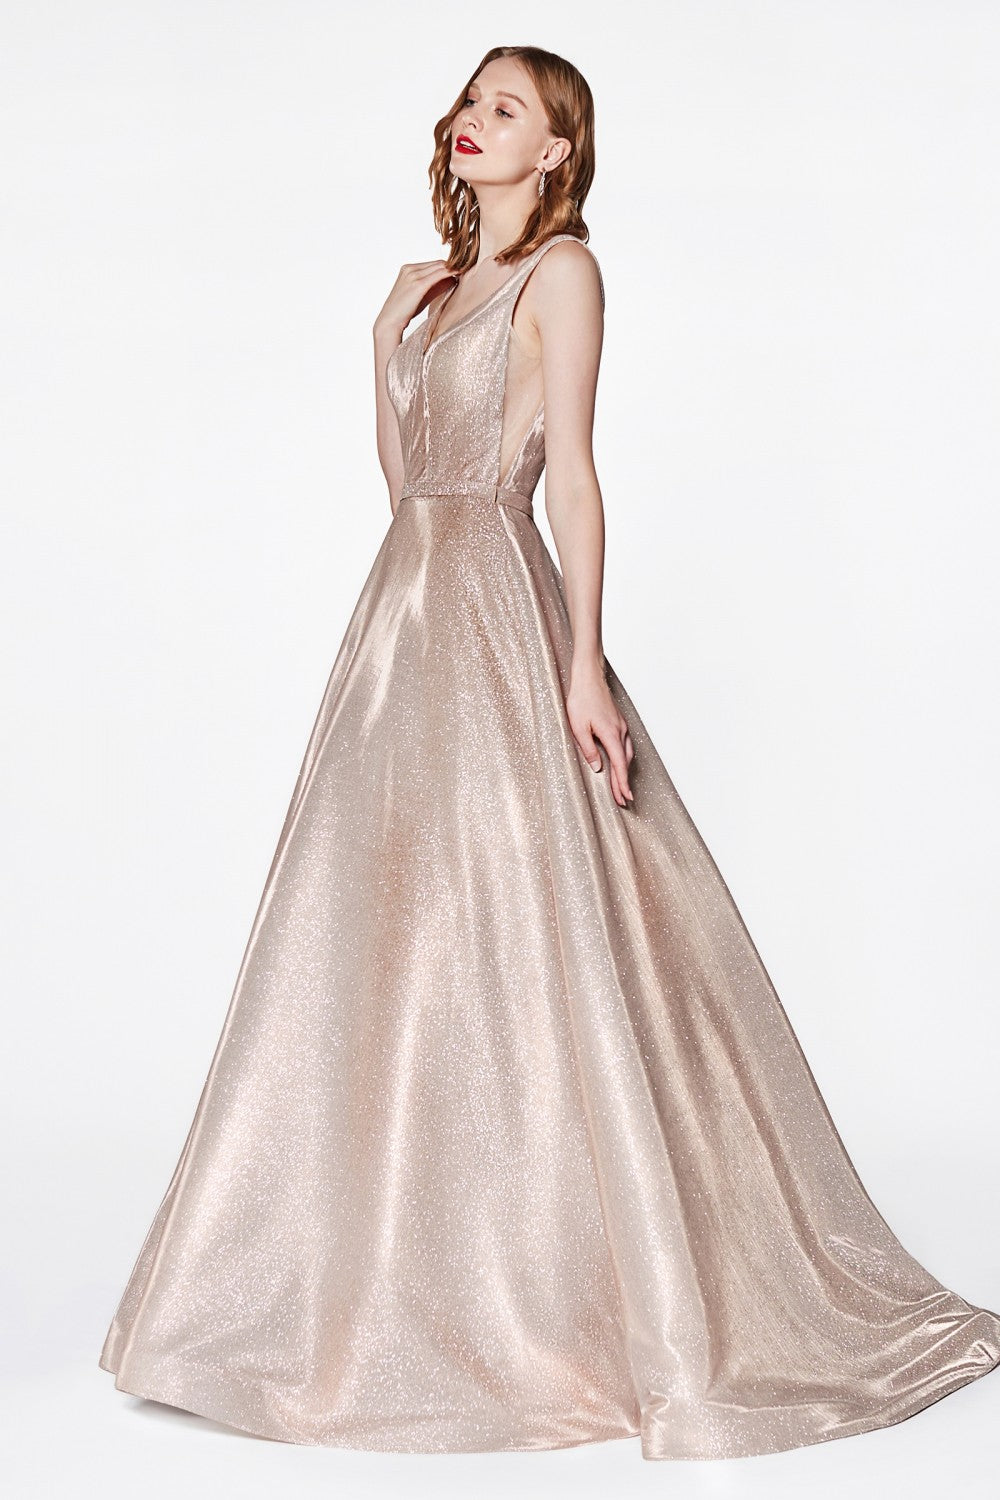 Cinderella Divine Chart I CD CB0029 - Glitter Metallic Ballgown with Plunging V-Neck & Sheer Sides - Diggz Prom